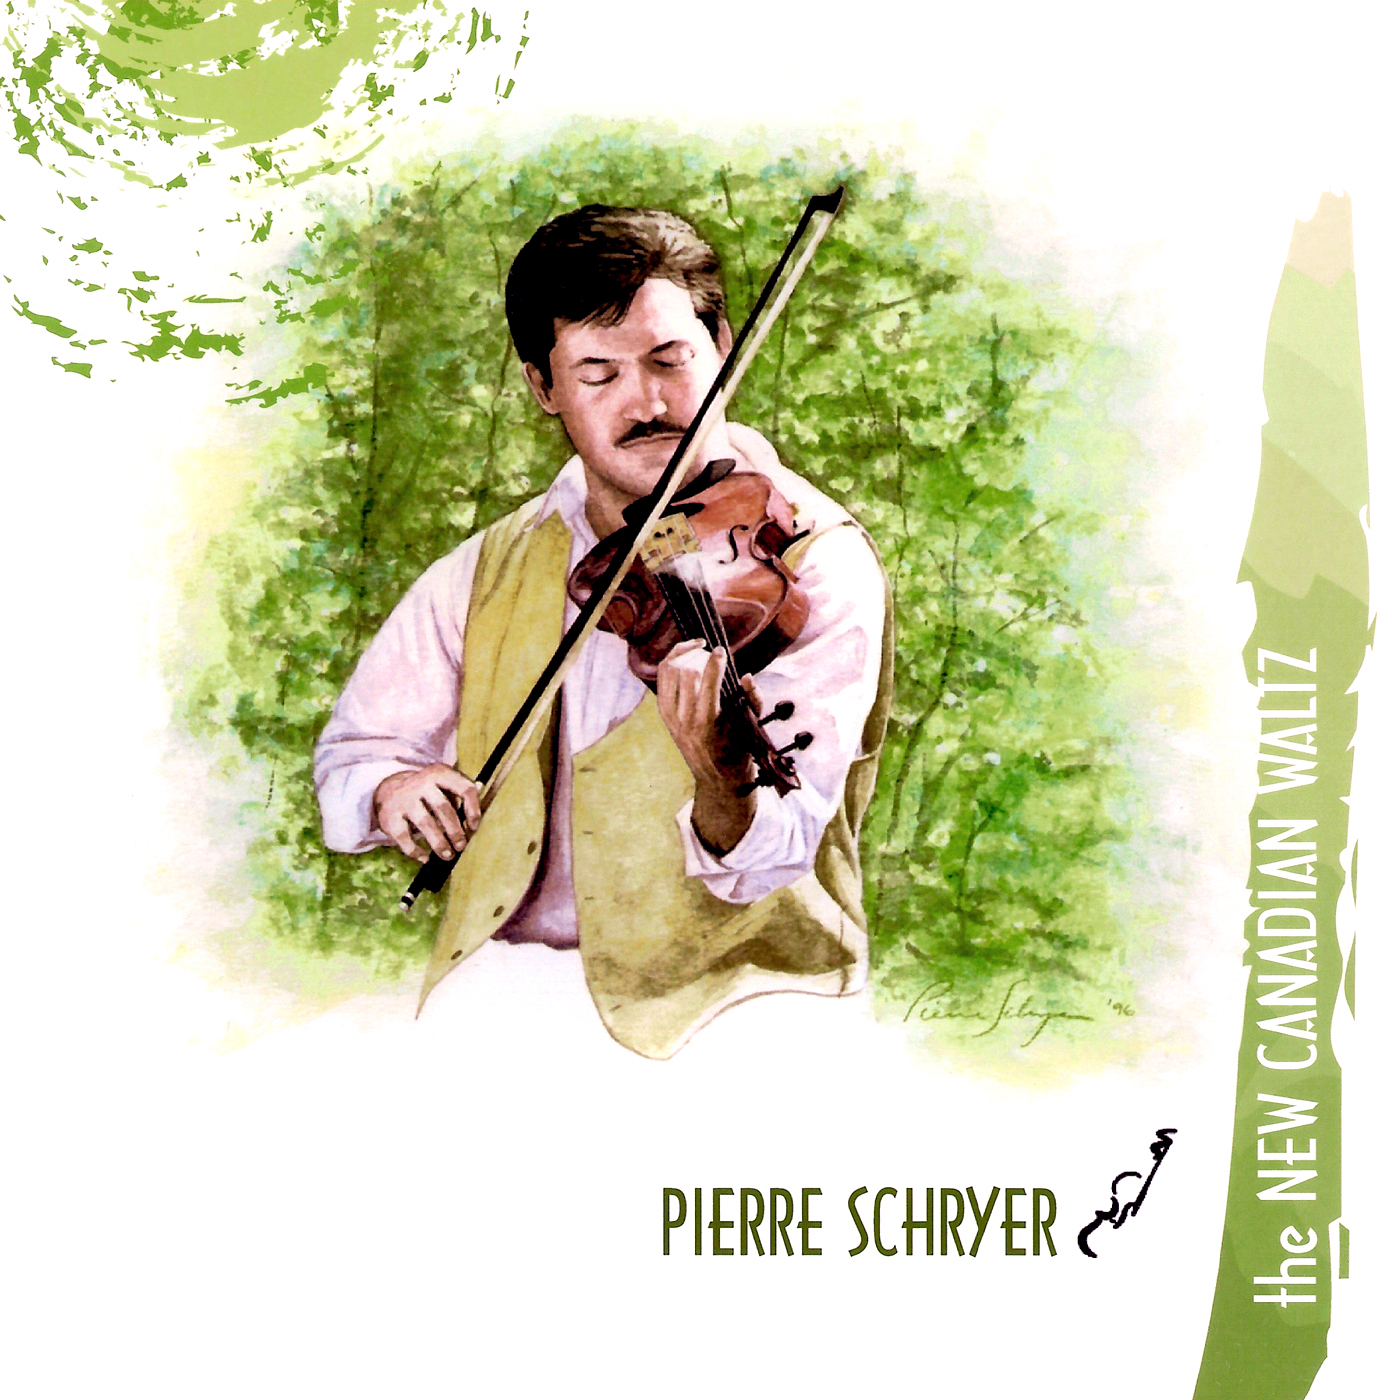 New Canadian Waltz - Pierre Schryer